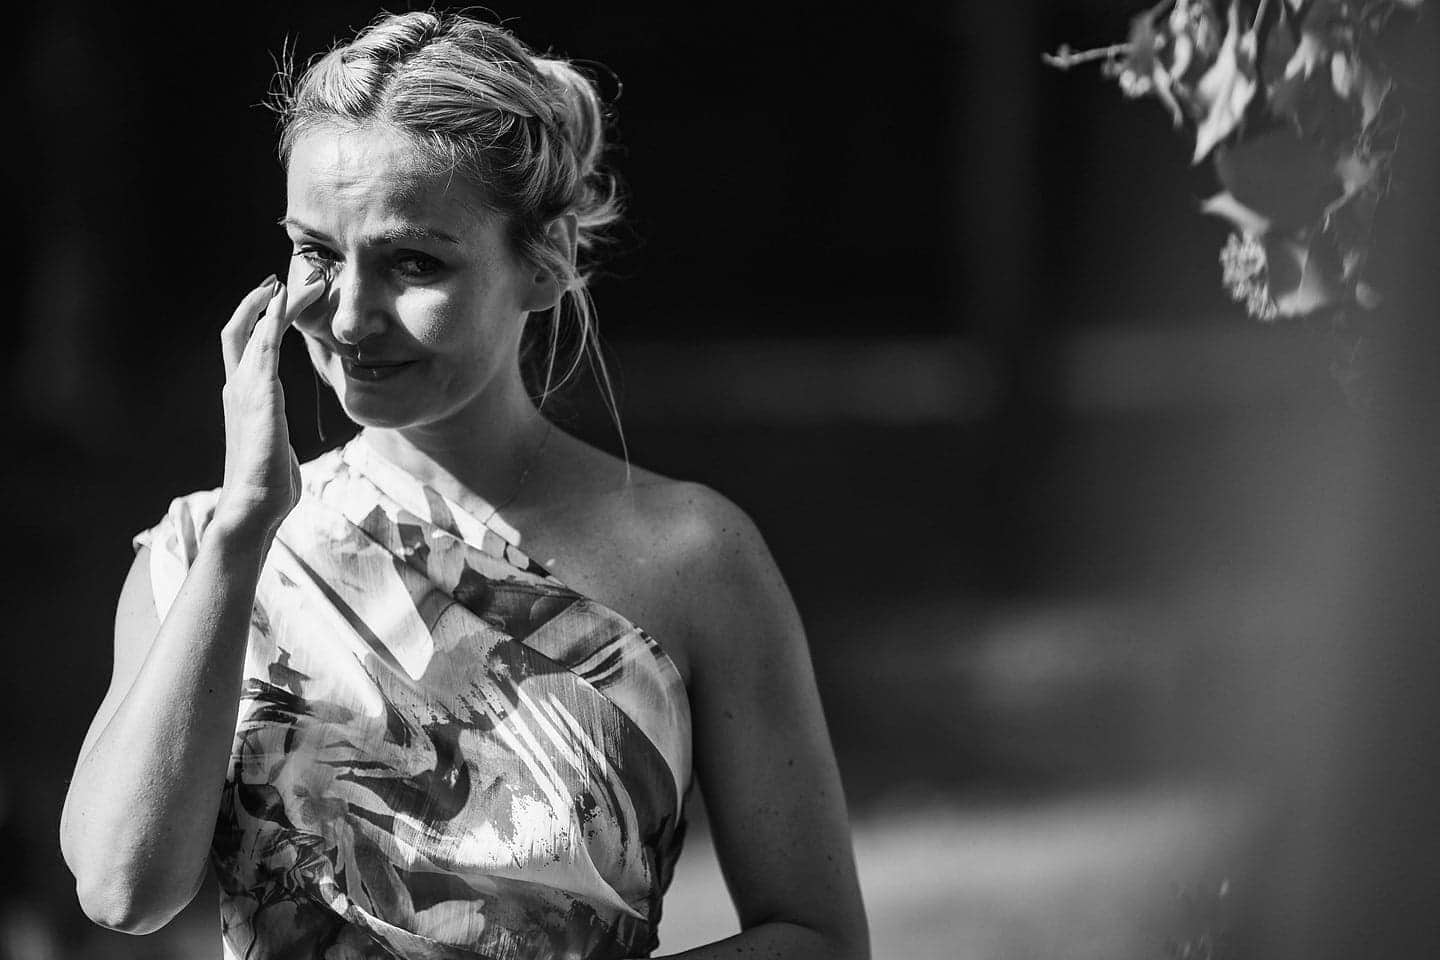 Best of wedding photography collection 2017 - by Aleks & Irena Kus 73